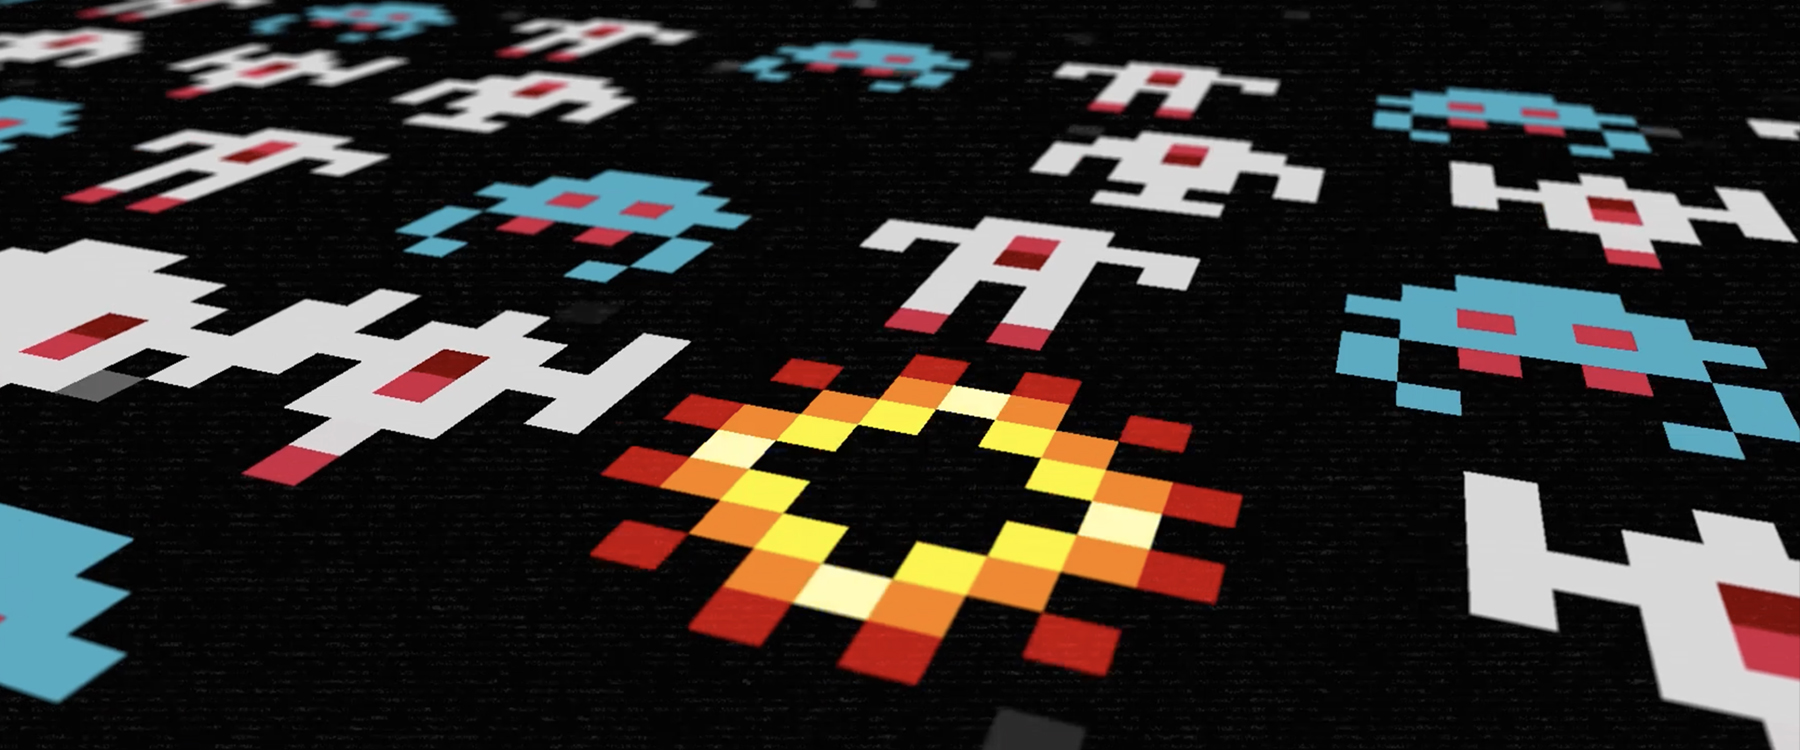 abstract space invaders